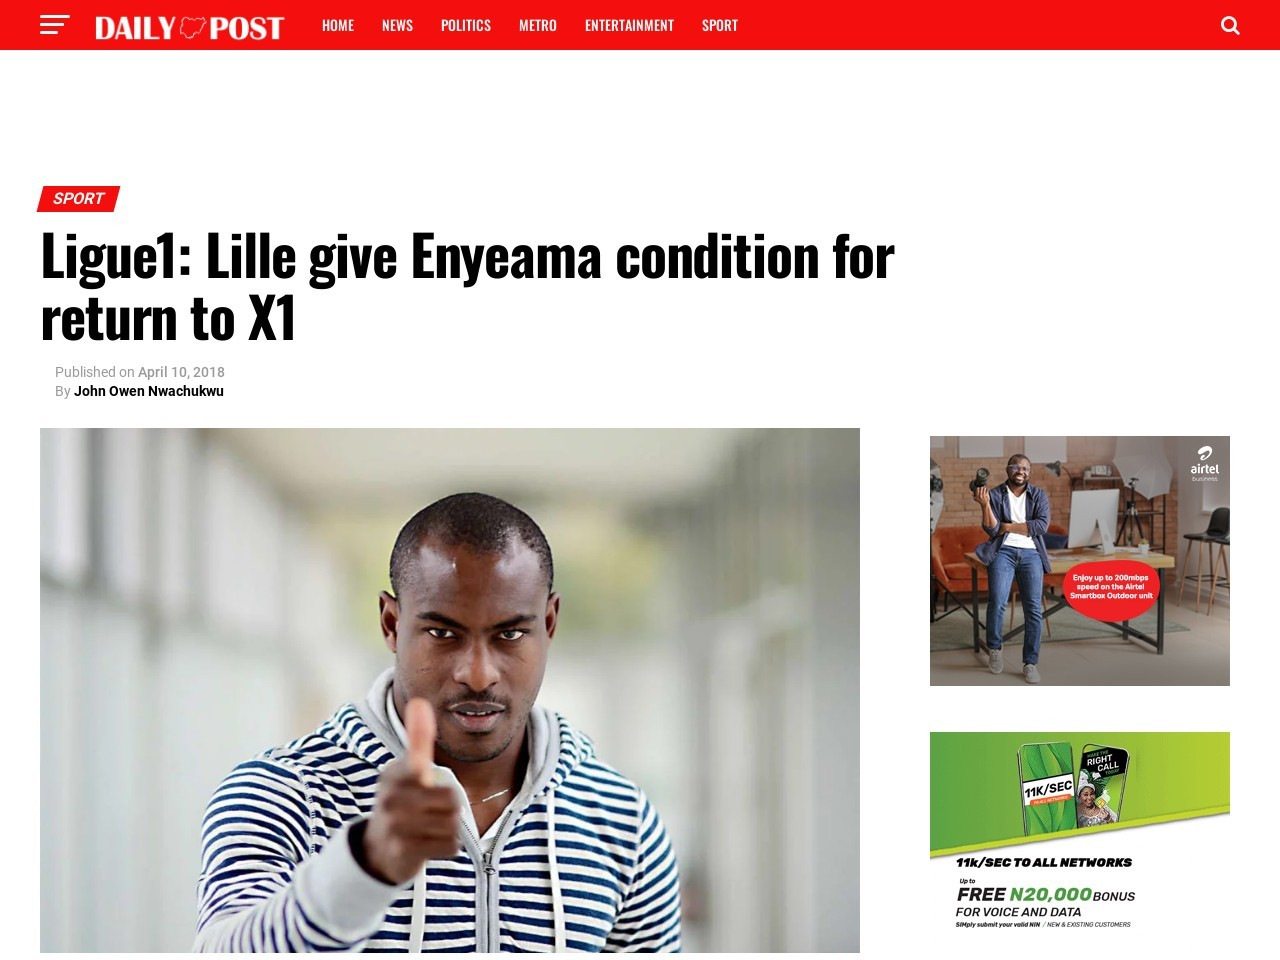 Ligue1: Lille give Enyeama condition for return to X1